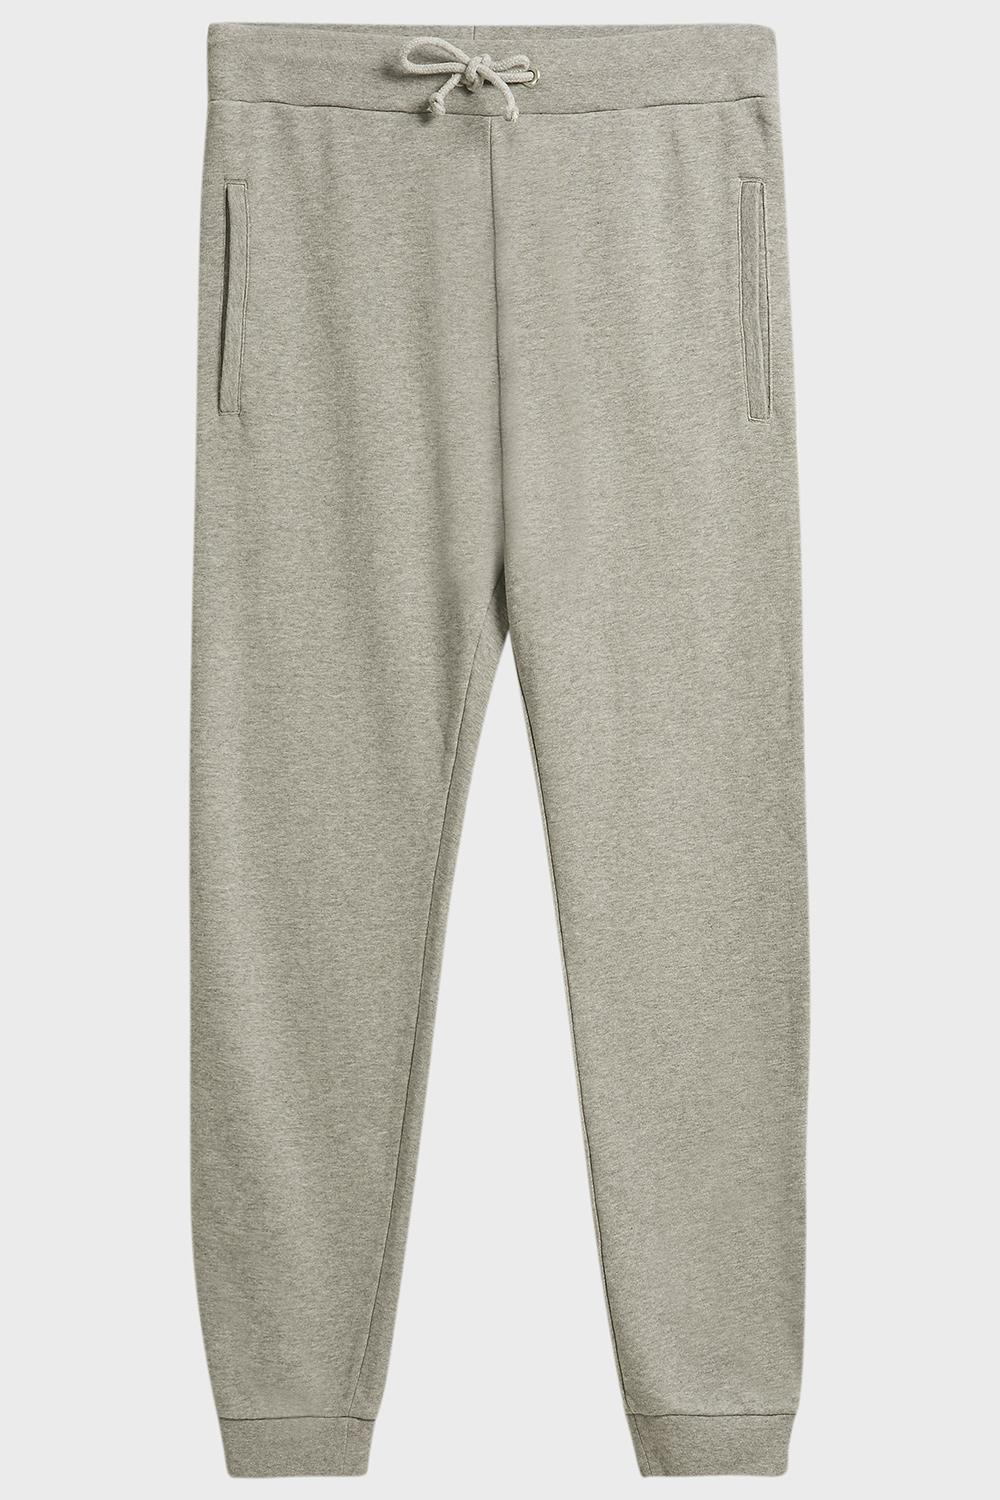 Cotton Drawstring Trousers Maison Martin Margiela k0Y20m